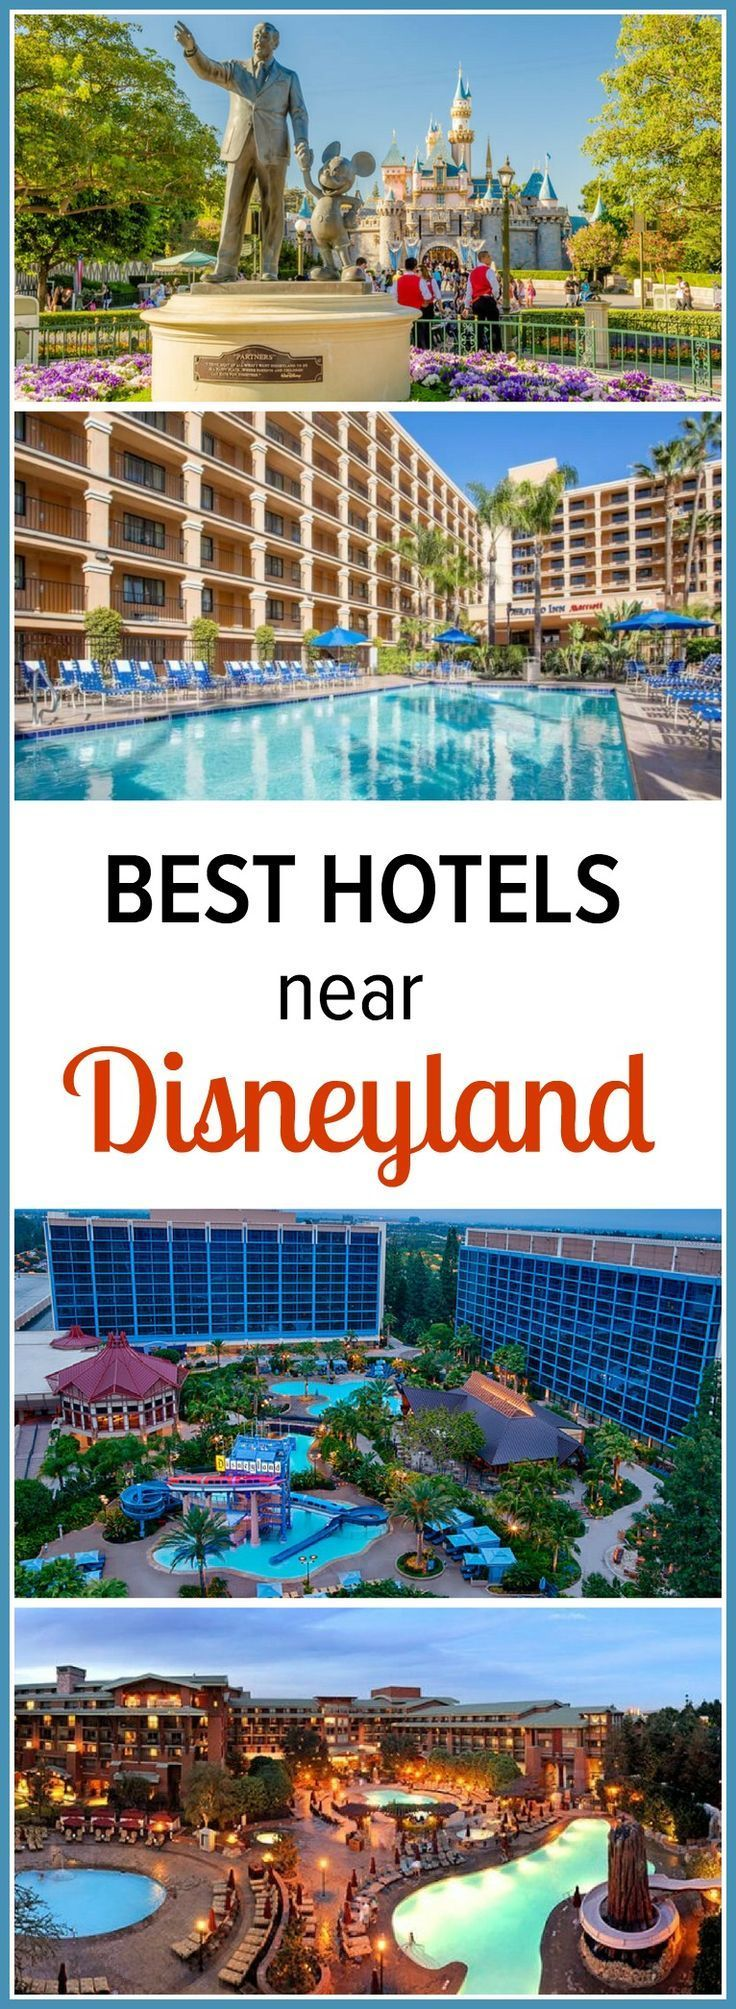 15 Best Hotels Near Disneyland, CA from Budget to Luxury